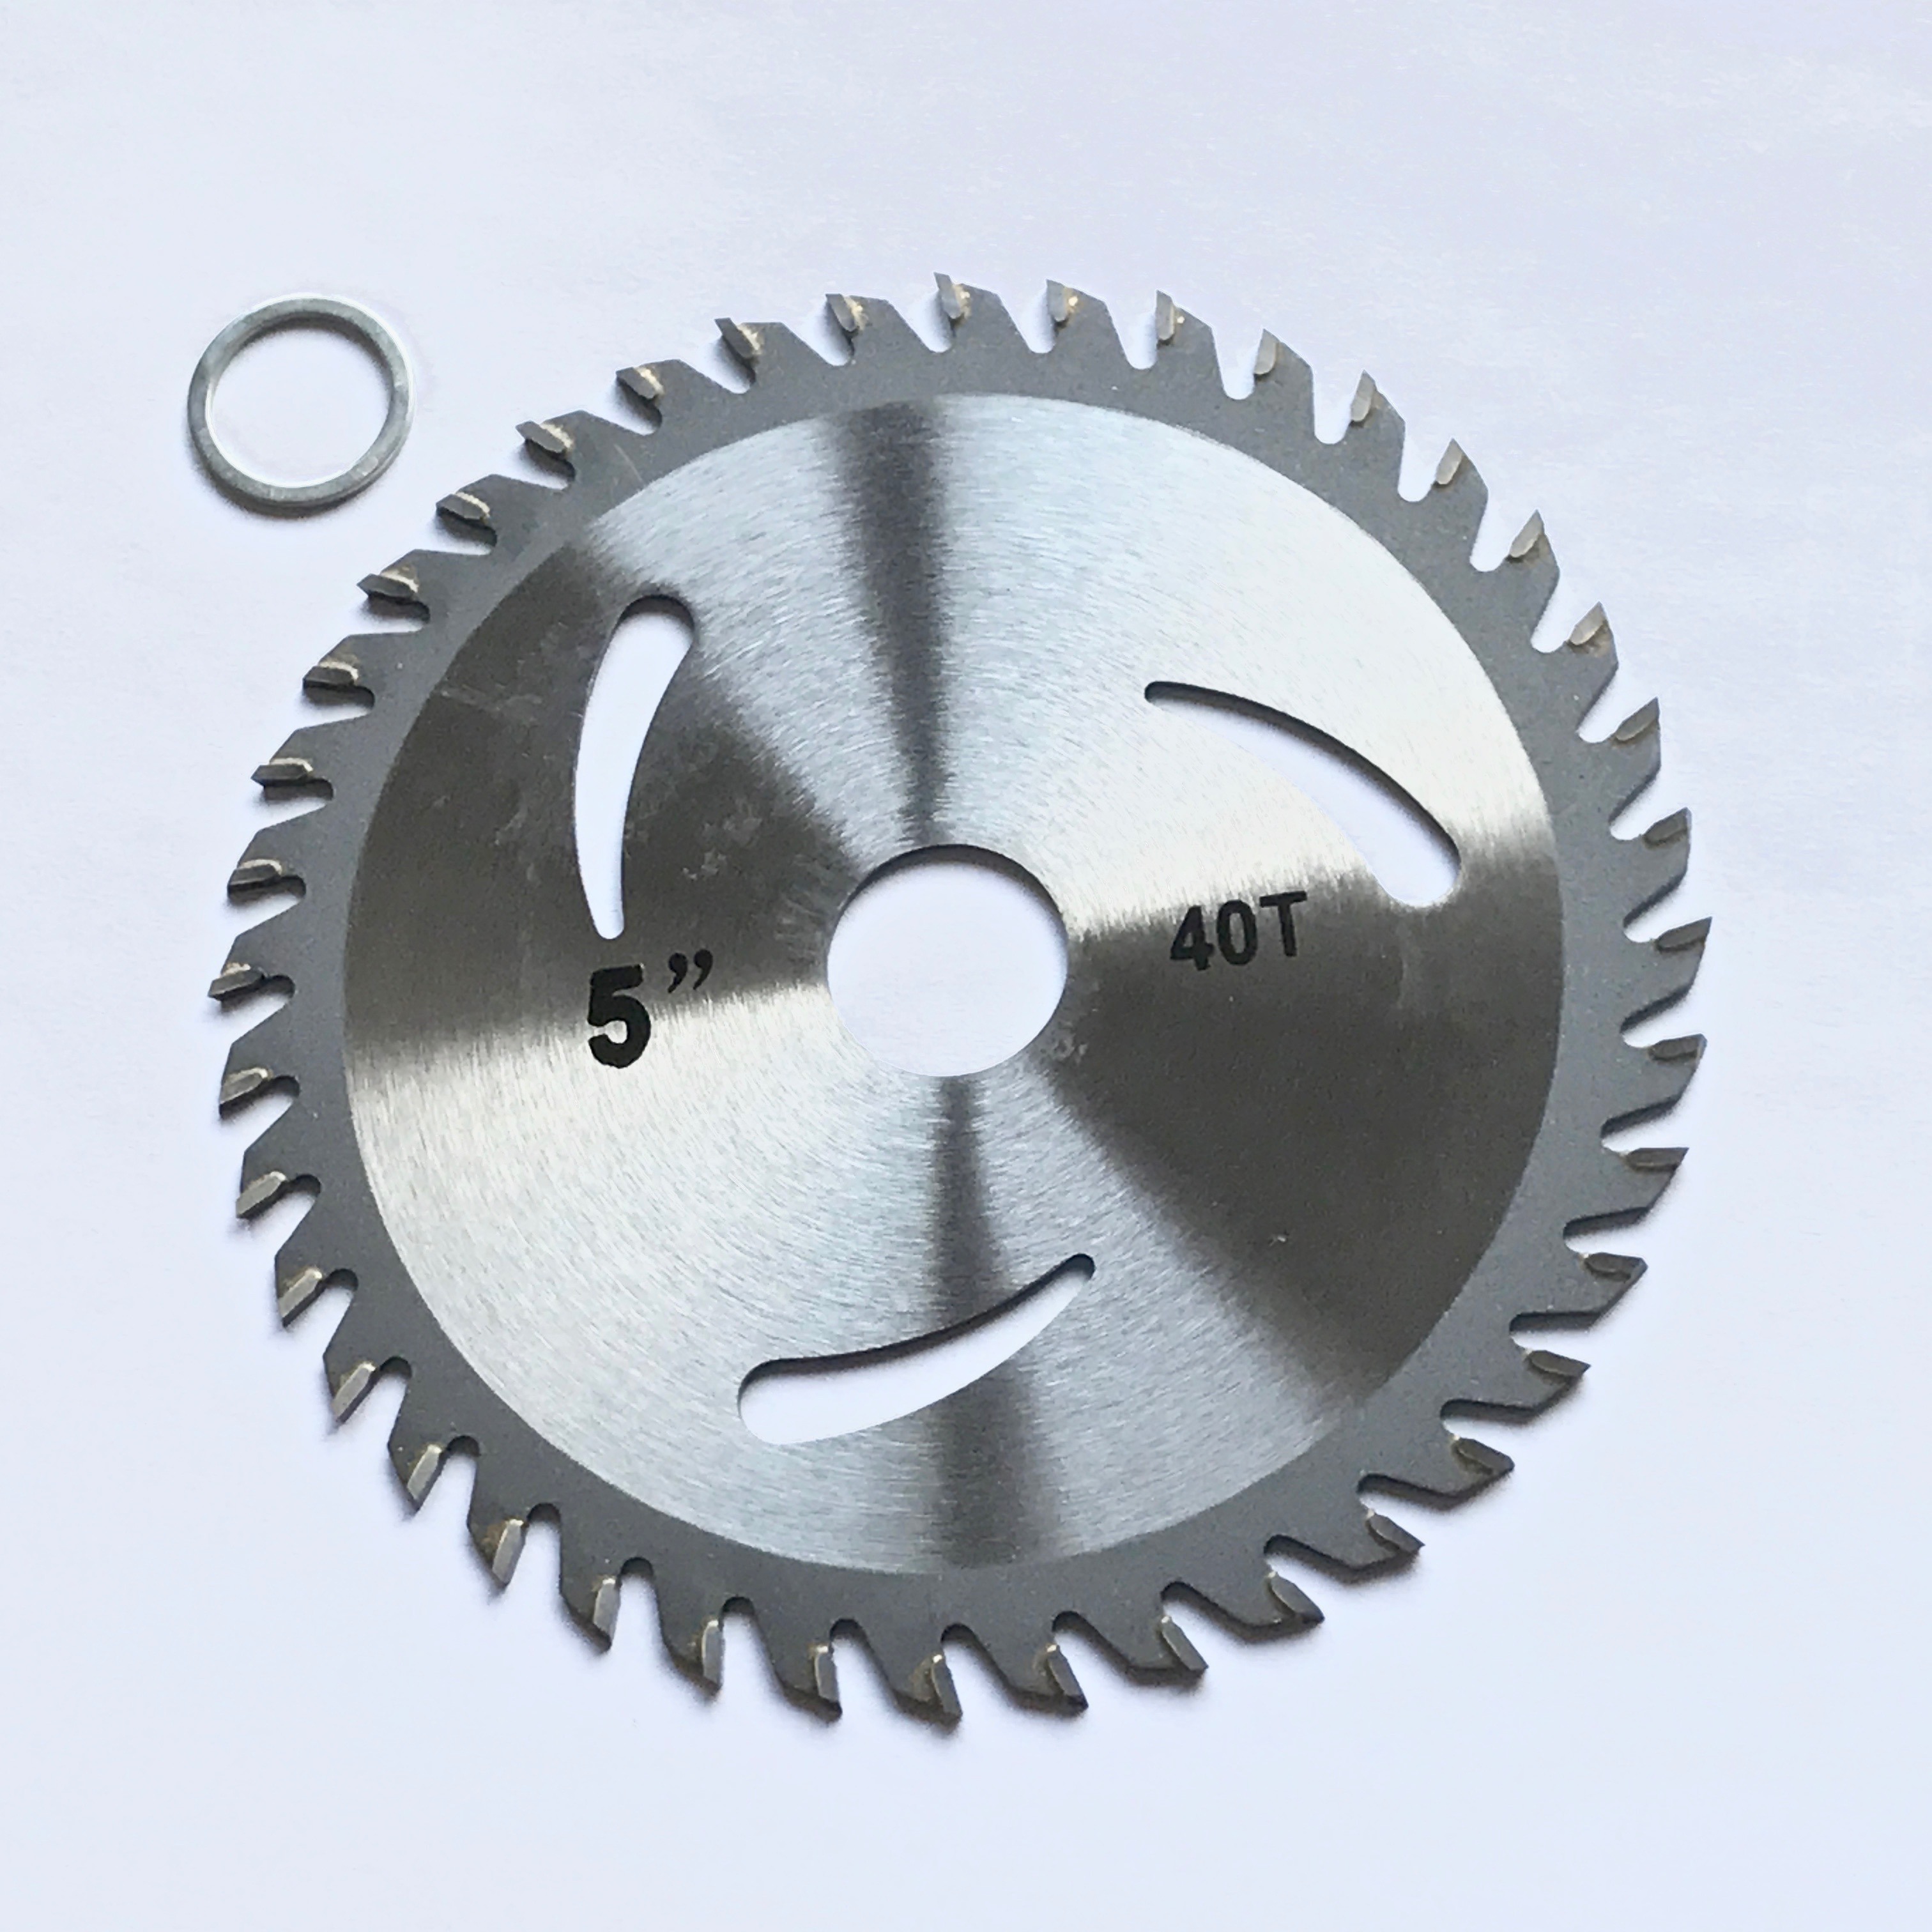 Free shipping 1PC of TCT saw blade 125 22 23 30T 40T with angel grinder using for hard wood thin metal plastic workpiece cutting in Saw Blades from Tools